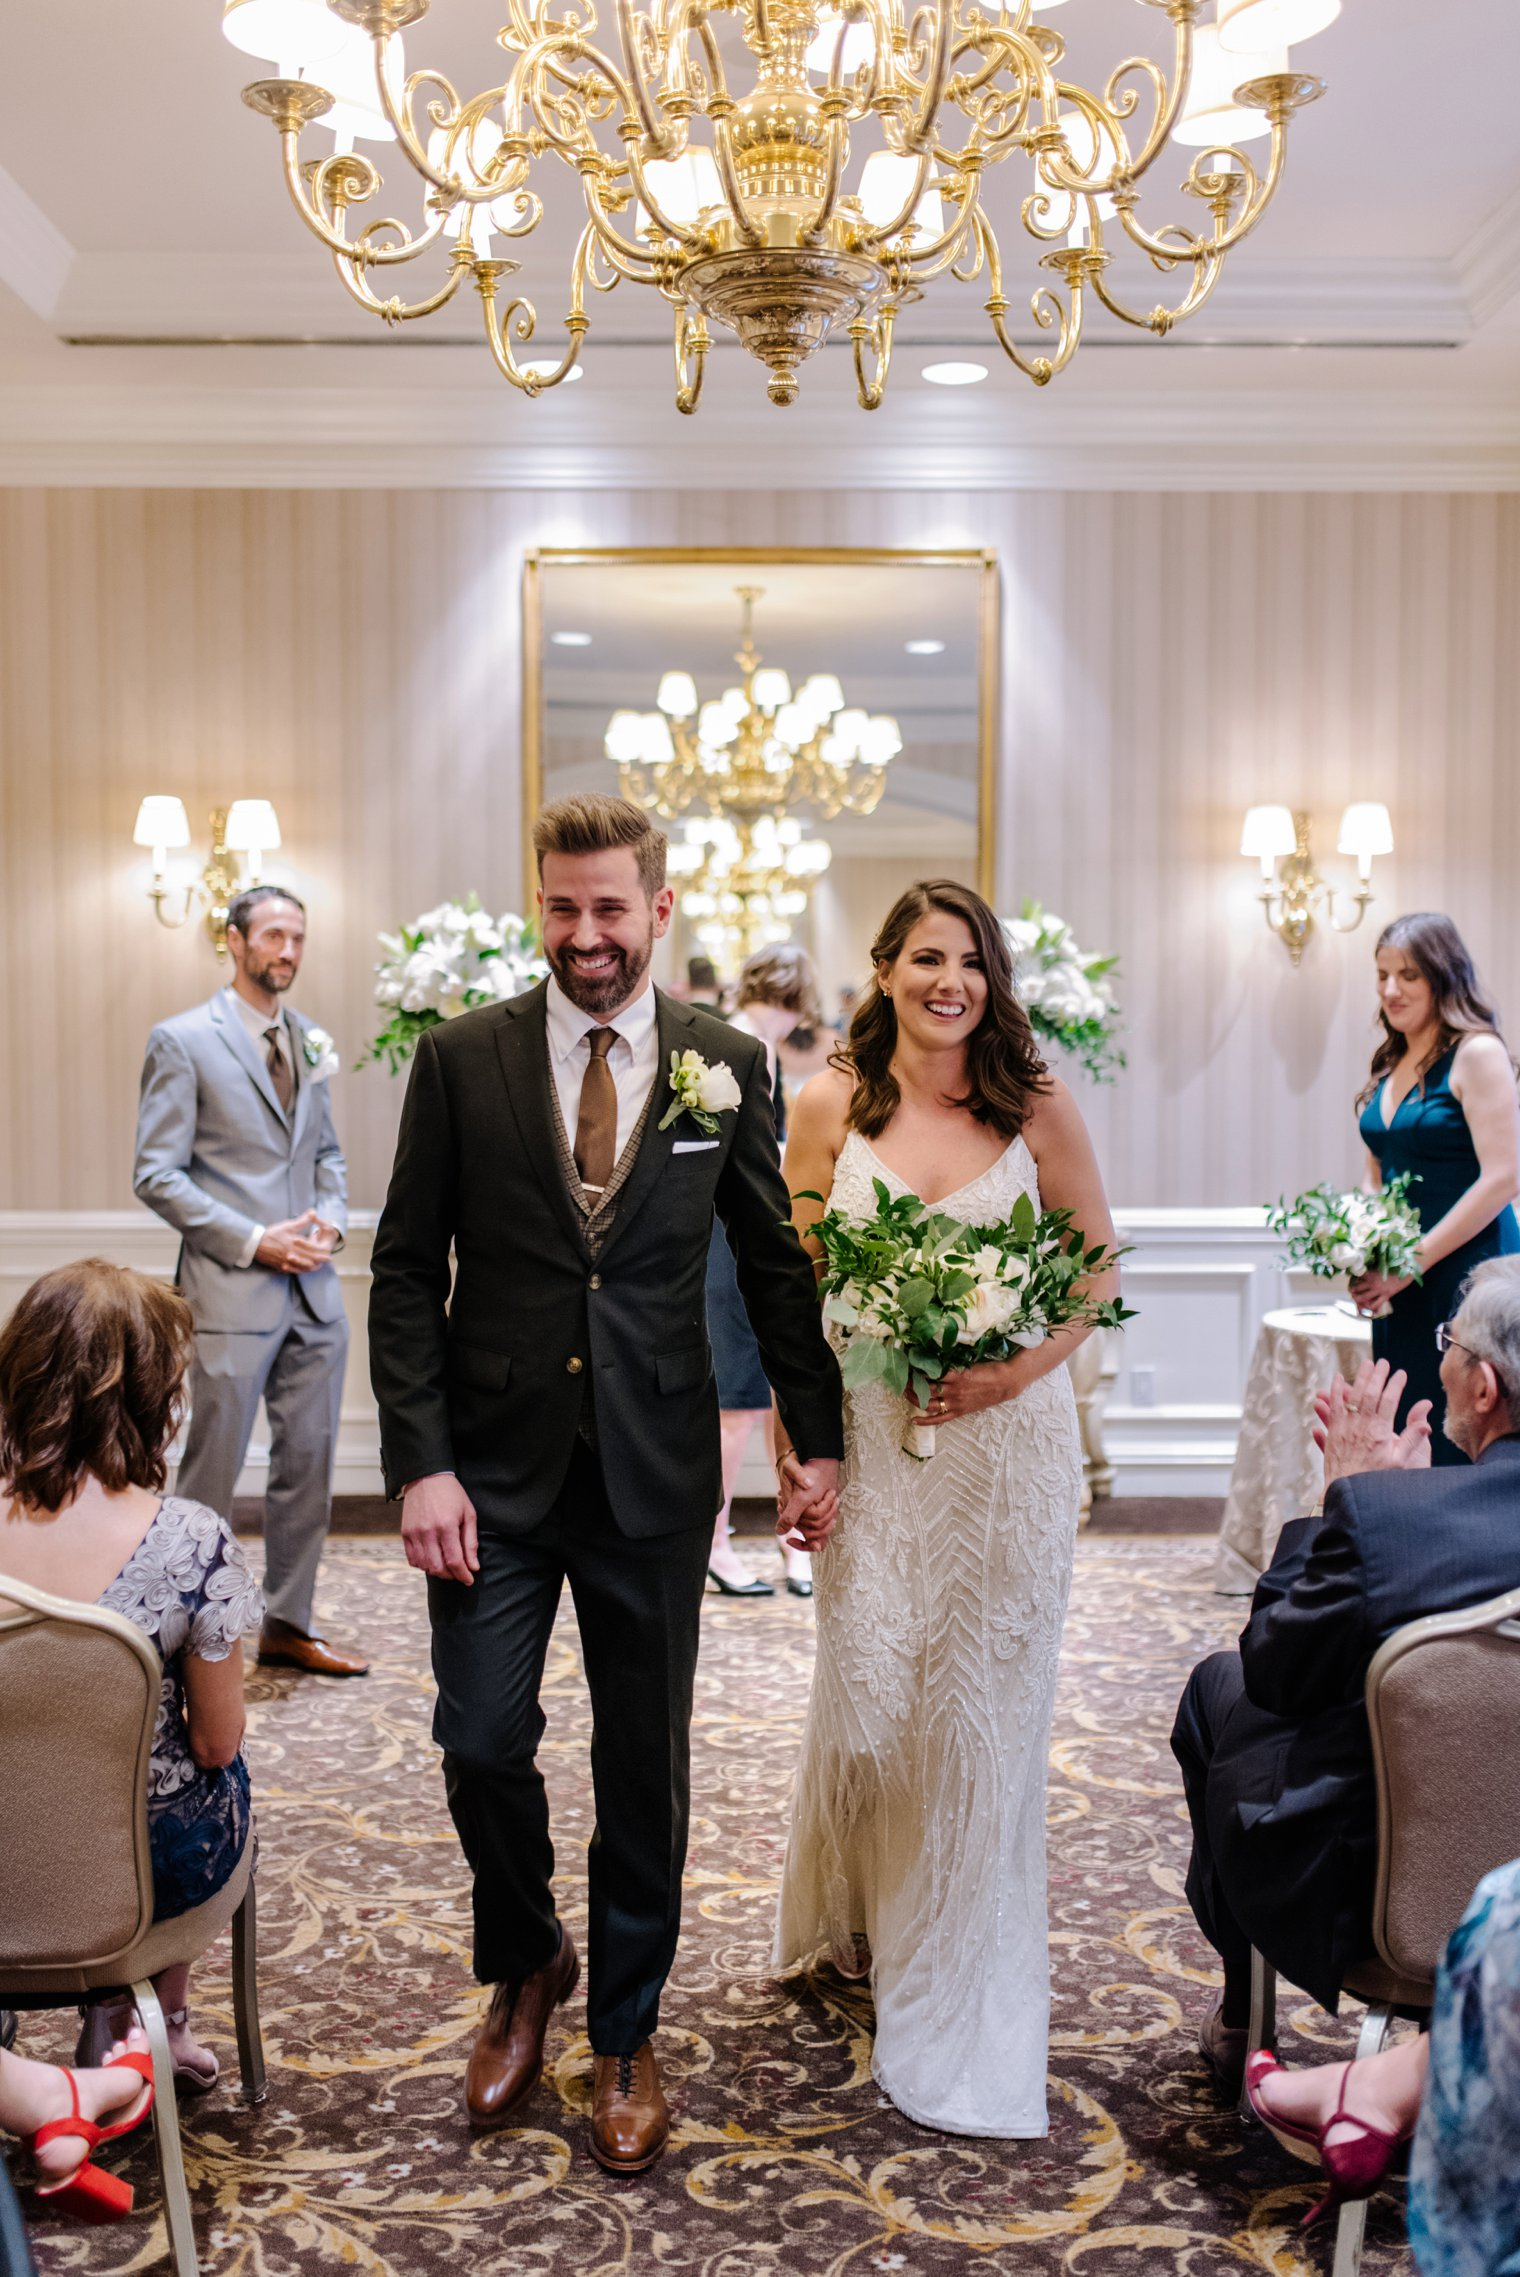 indoor wedding ceremony at sutton place hotel in vancouver